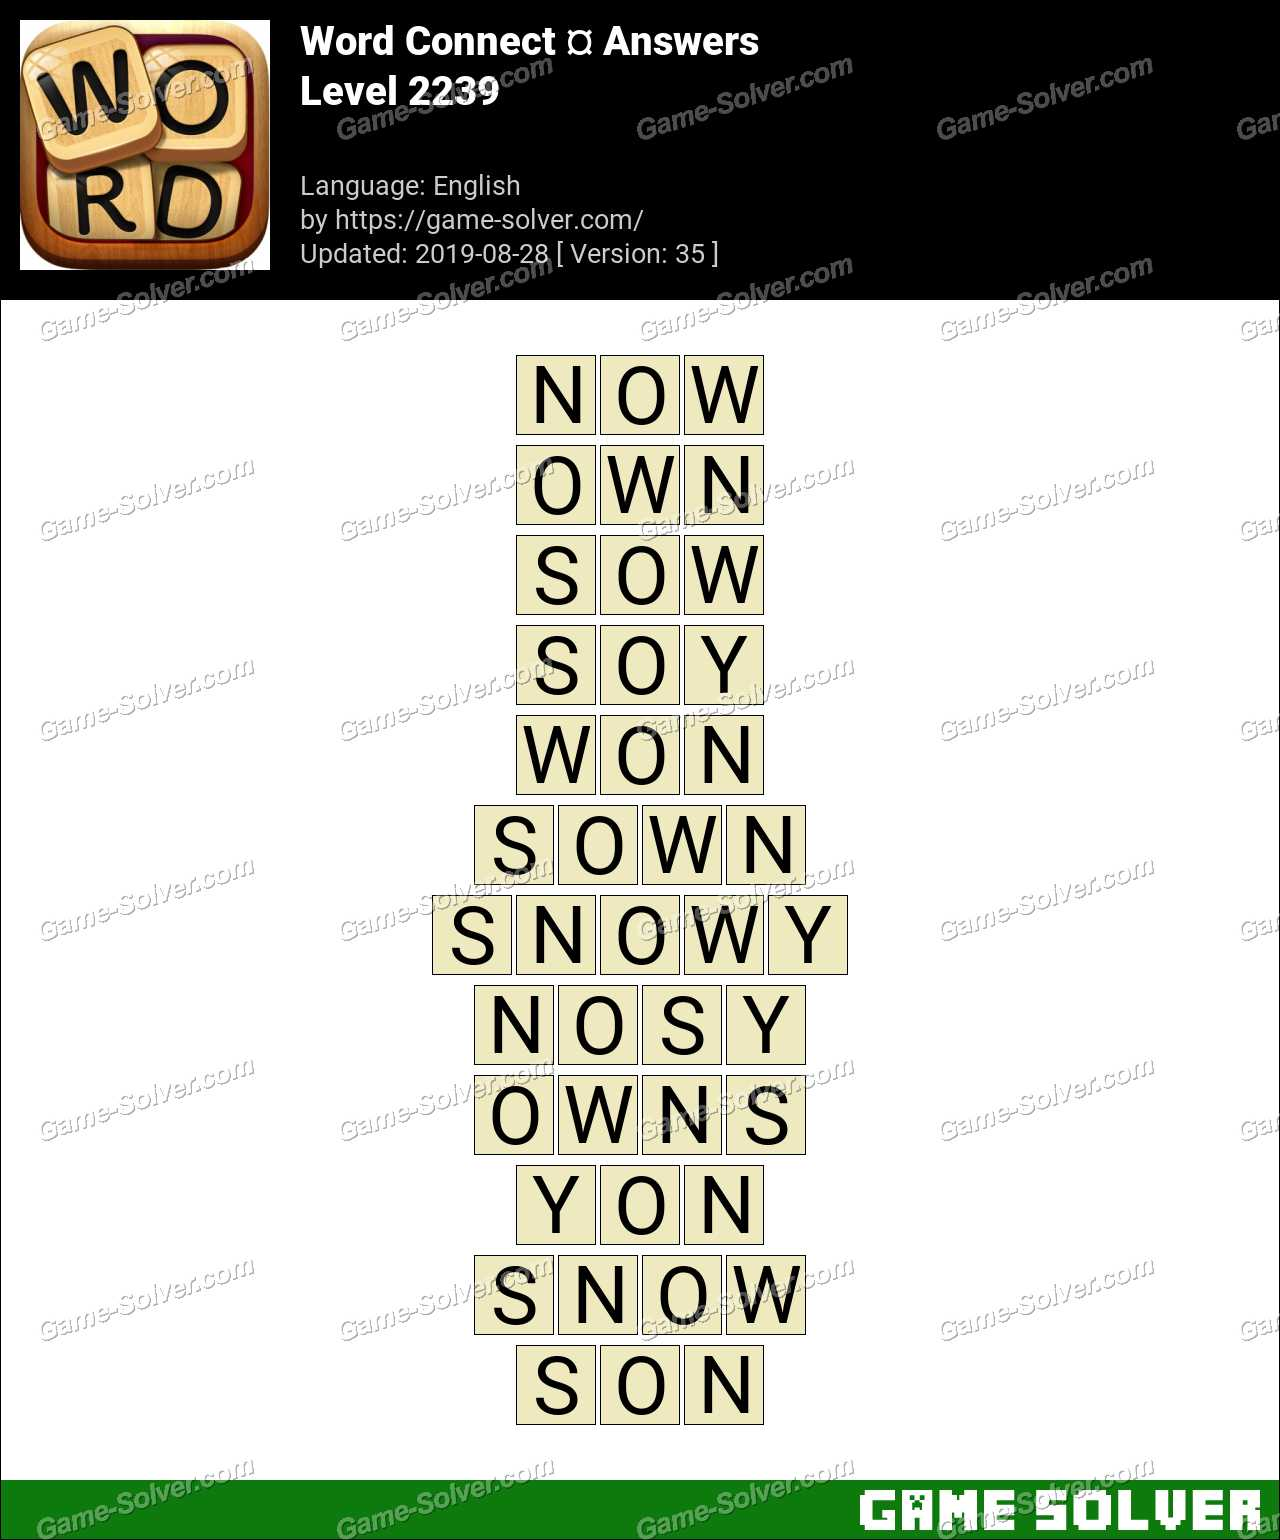 Word Connect Level 2239 Answers